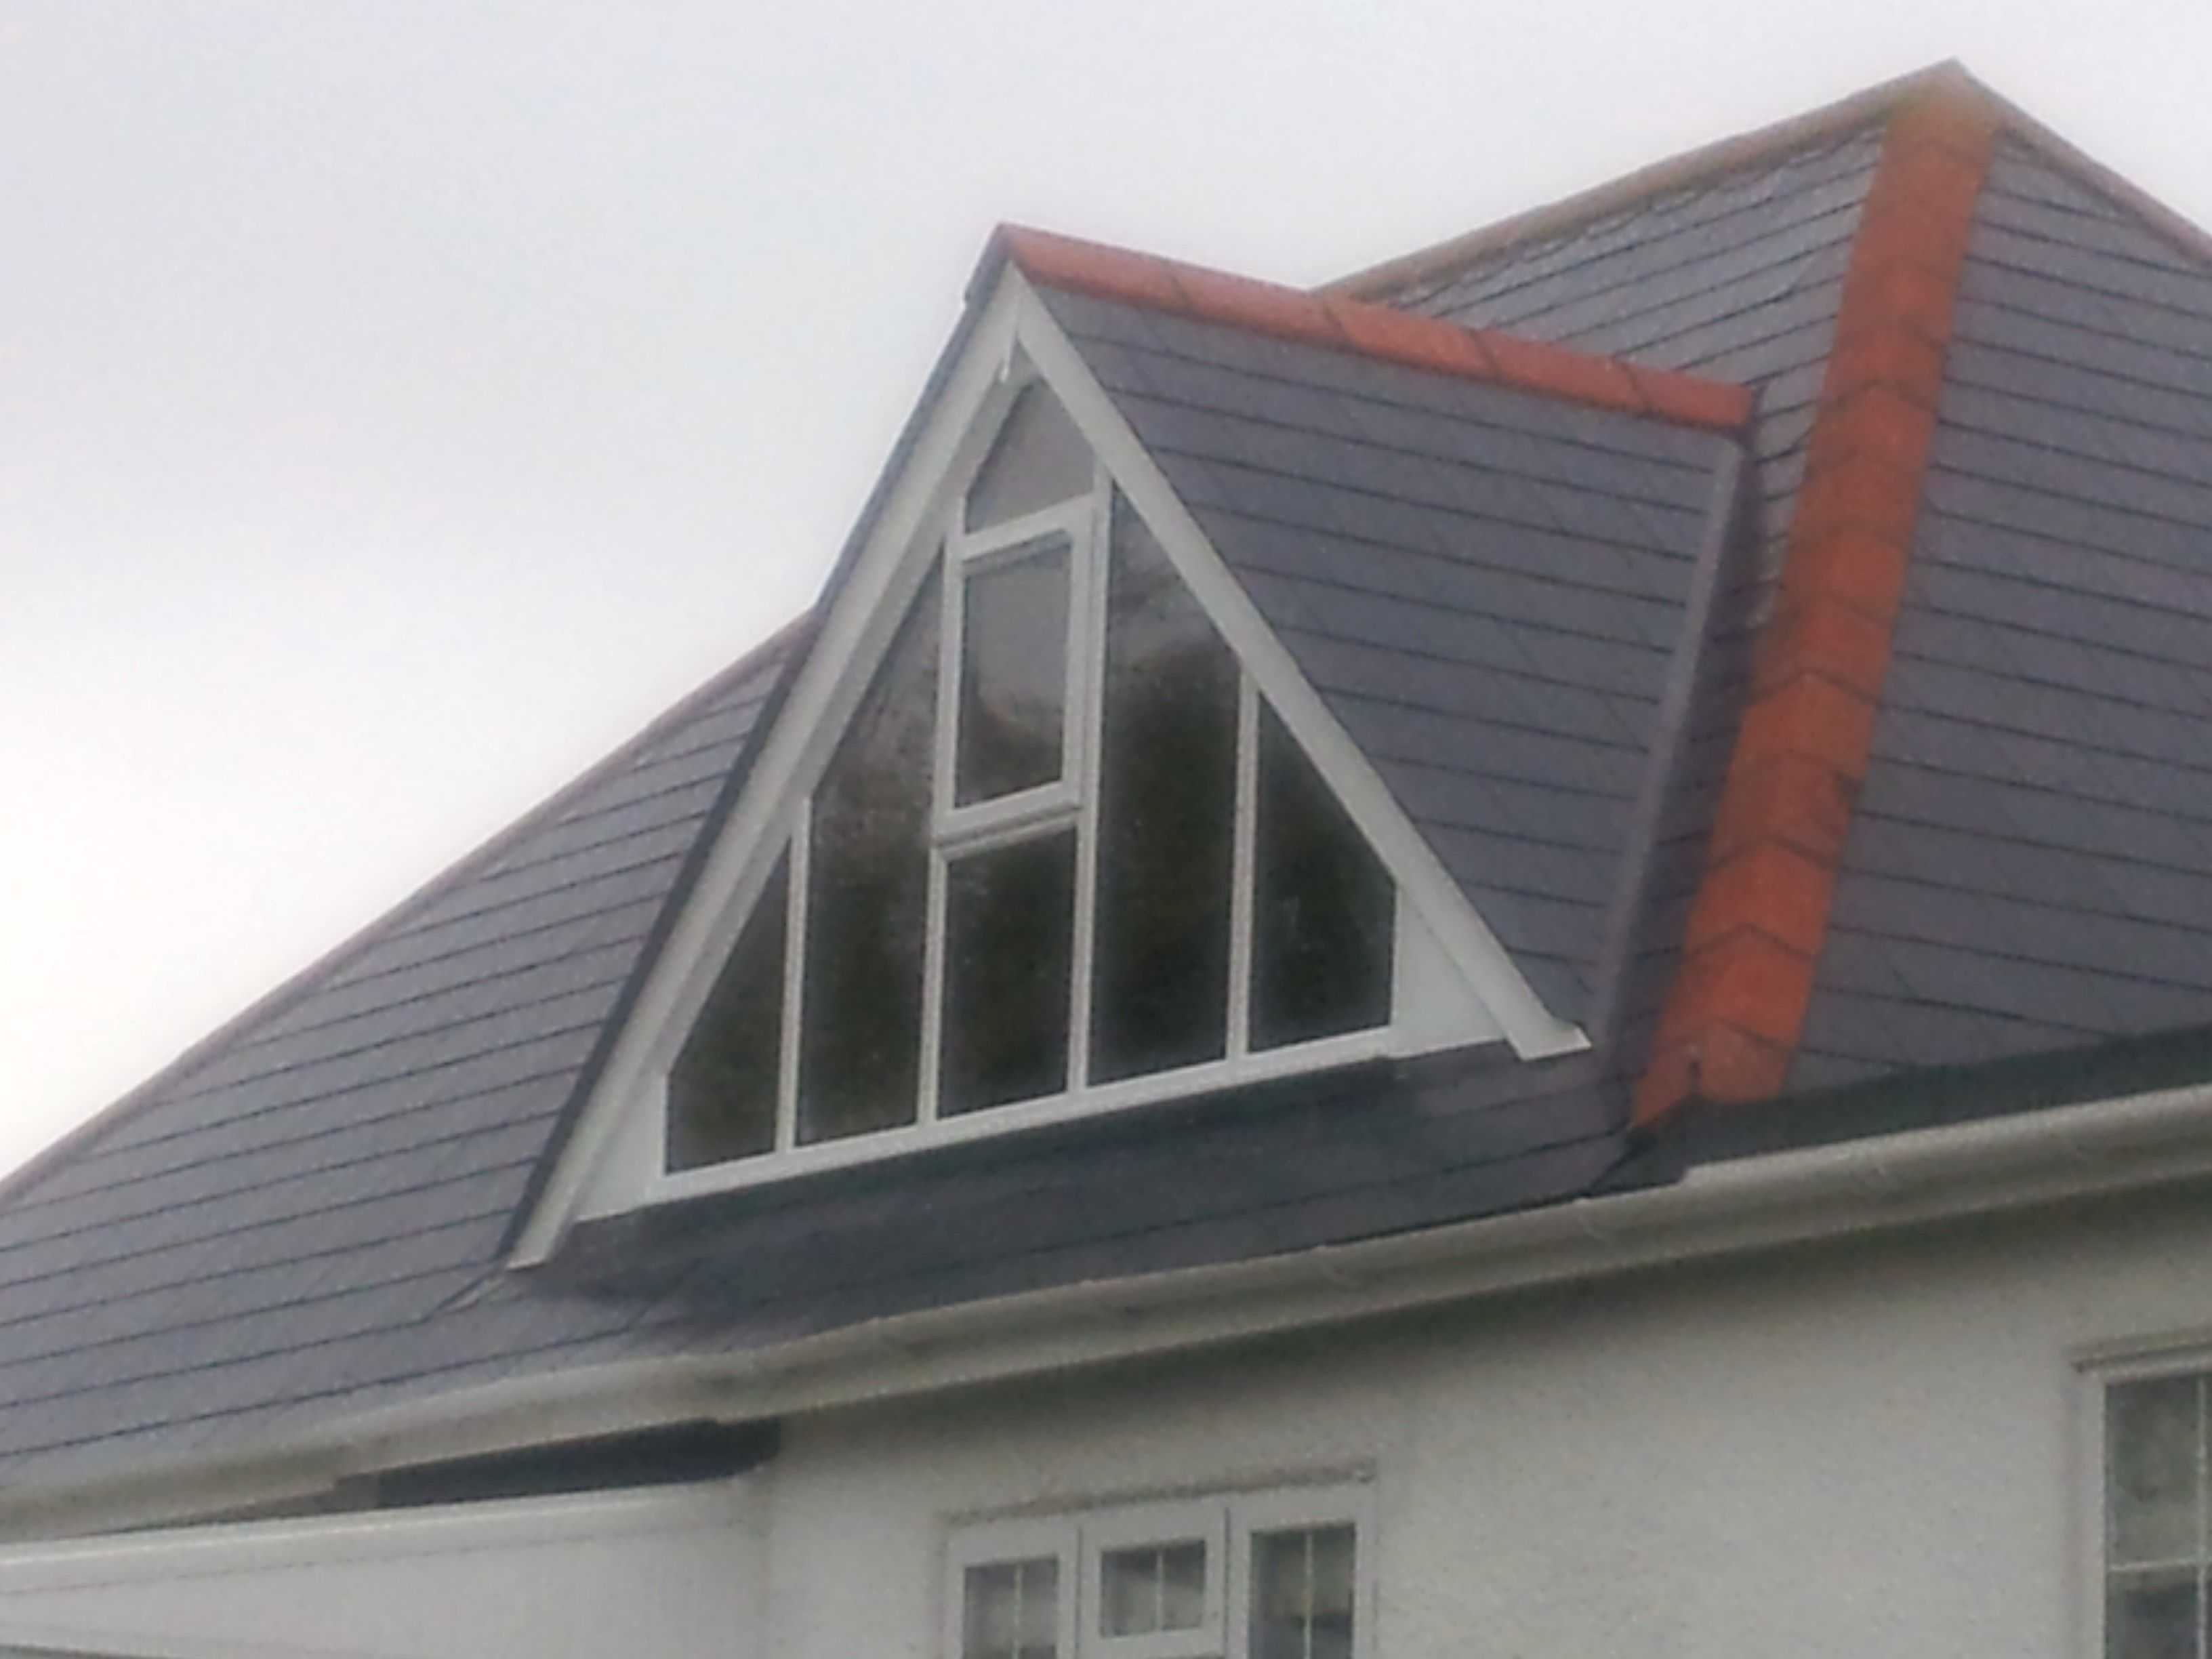 Glass Gable Ended Dormer Window For Room With High